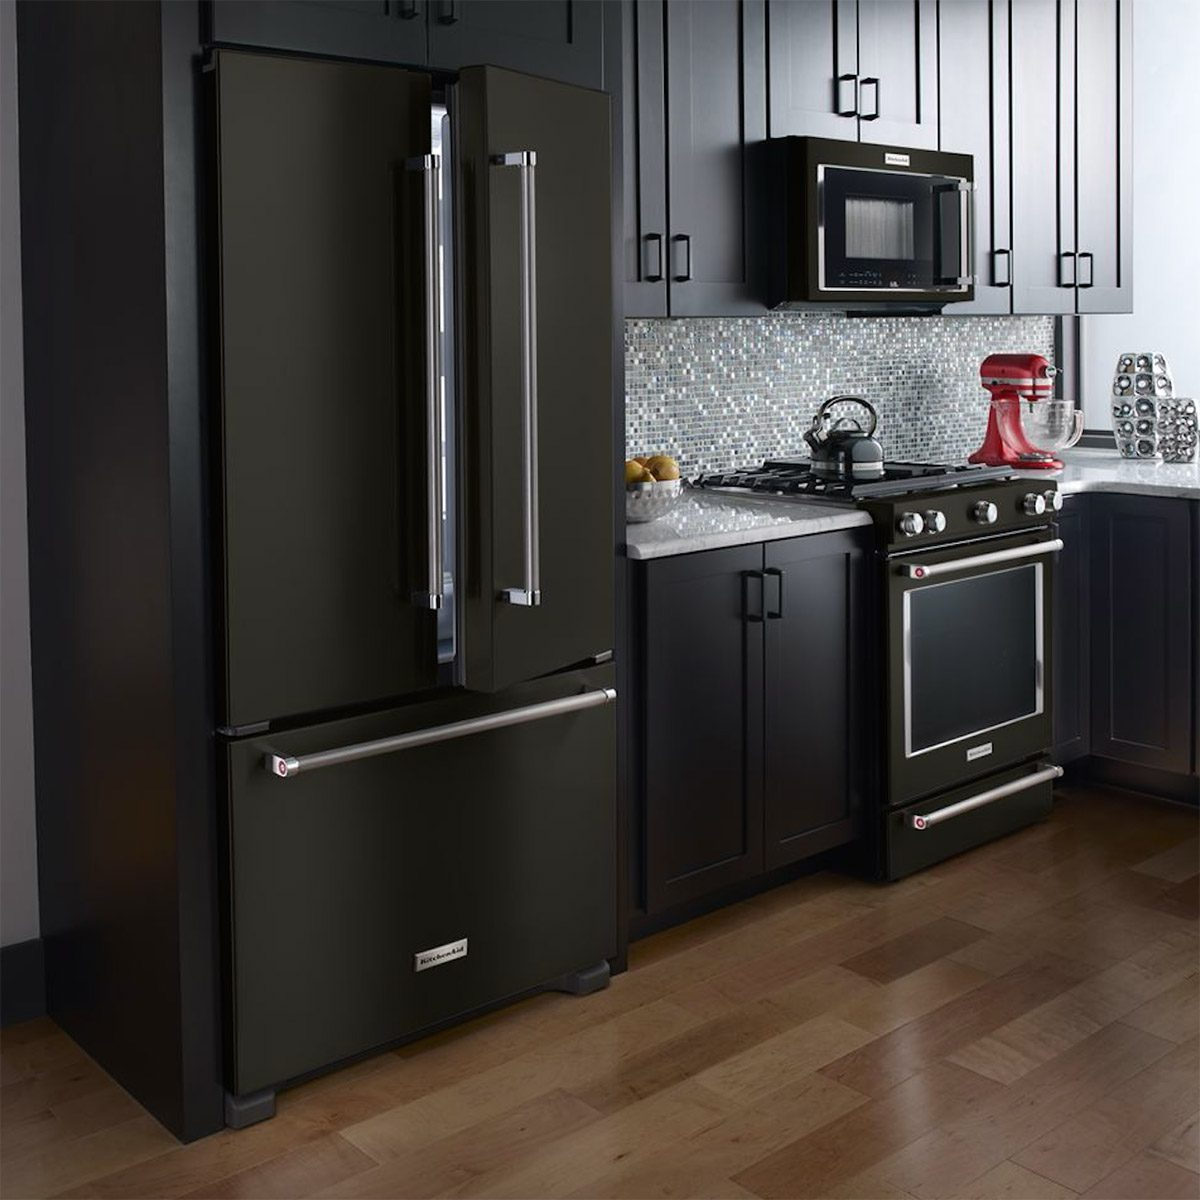 Home trend black stainless steel appliances the family Kitchens with black appliances